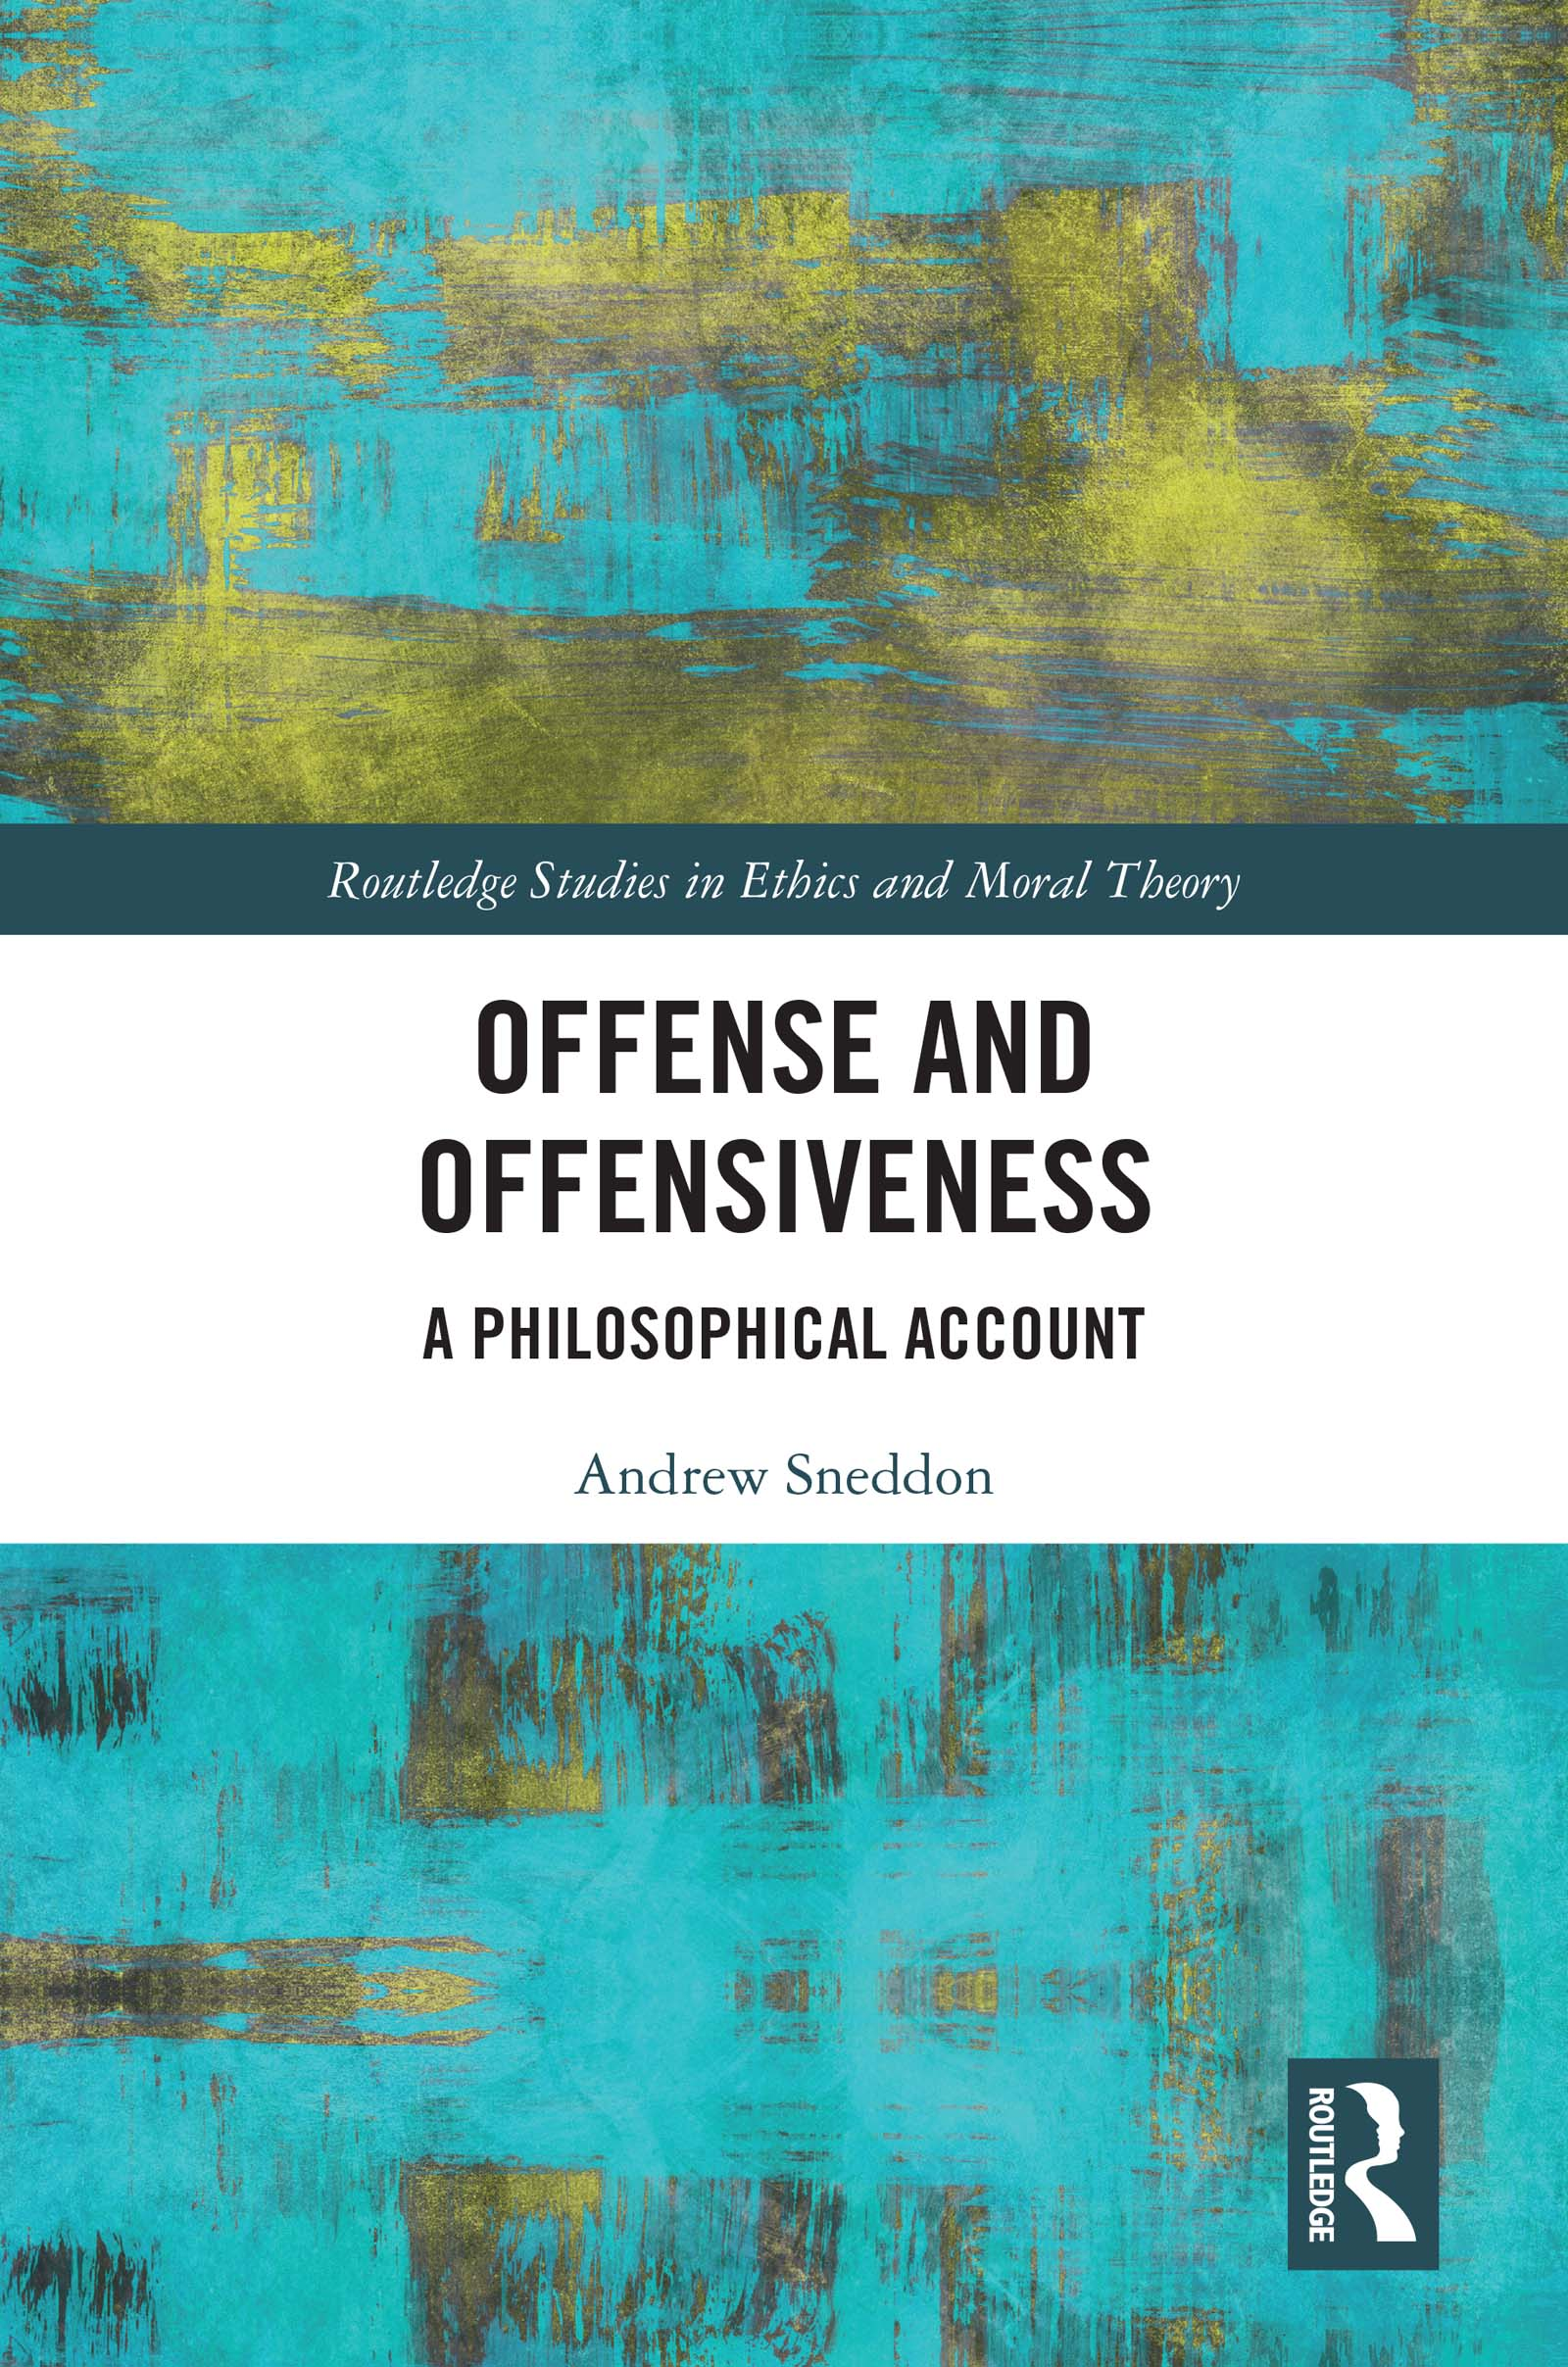 The Significance of Offensiveness